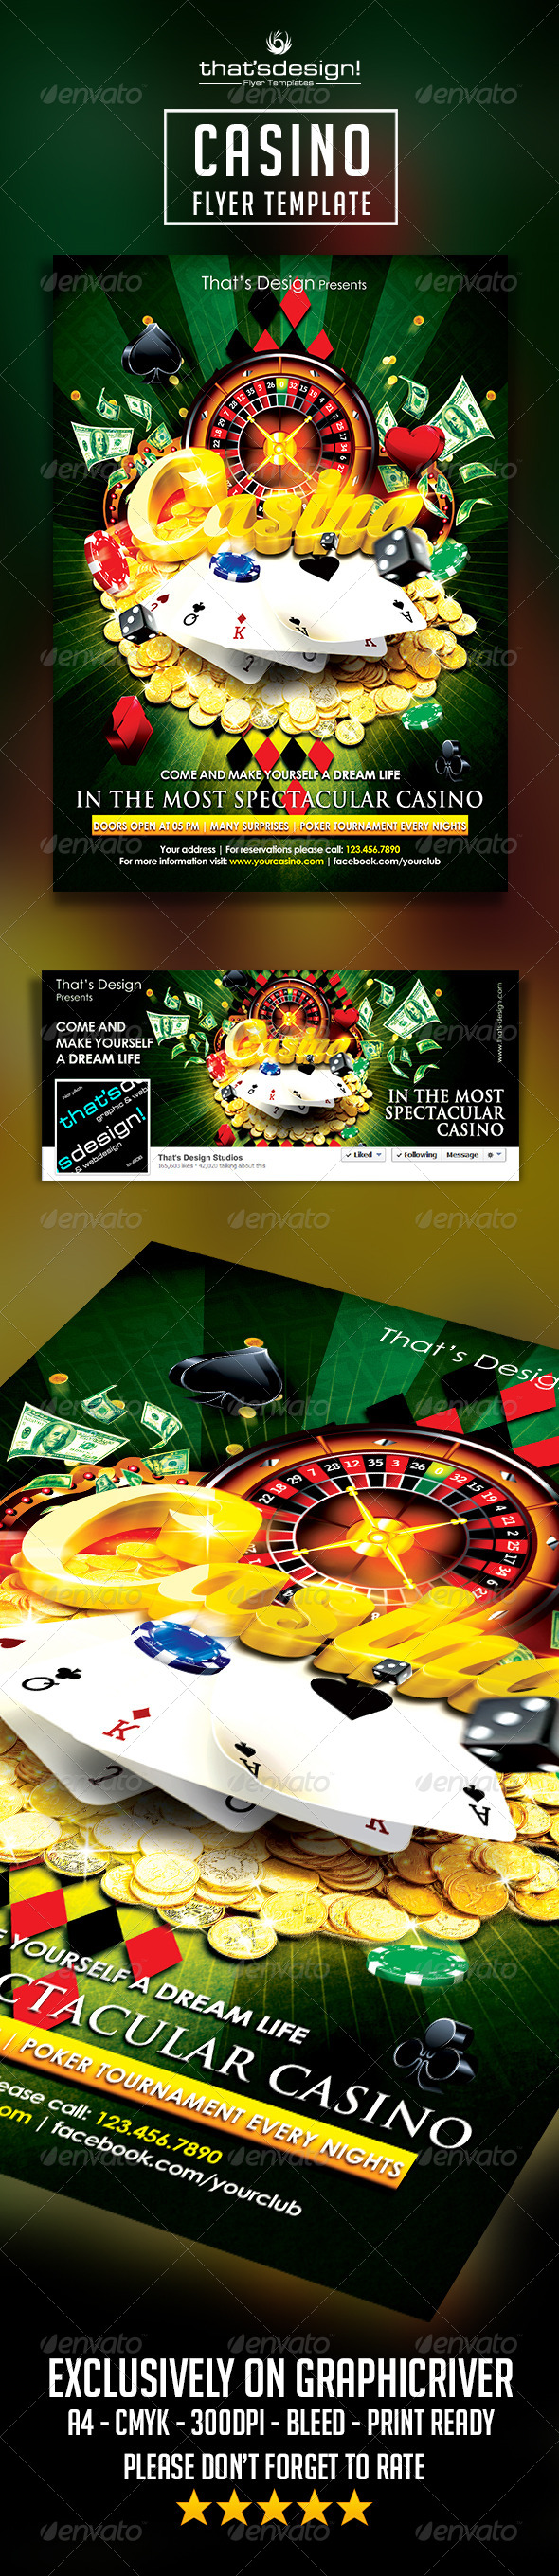 Casino Flyer Template - Print Templates